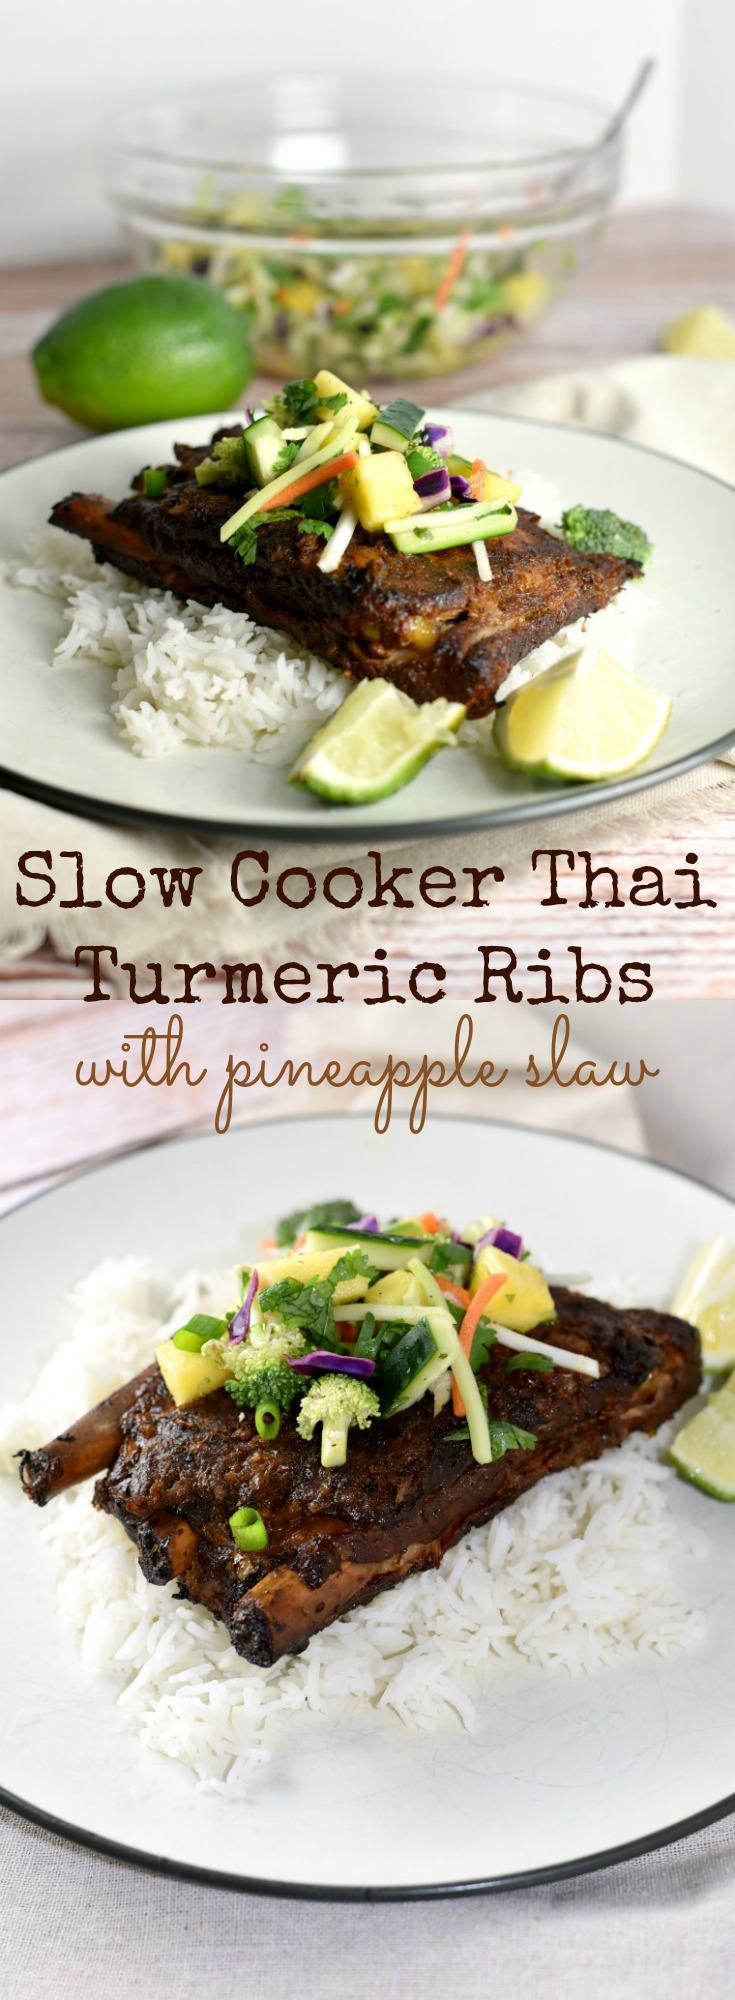 These Slow Cooker Thai Turmeric Pork Ribs are fall off the bone tender, packed with flavor & topped with a fresh # vibrant Pineapple slaw.